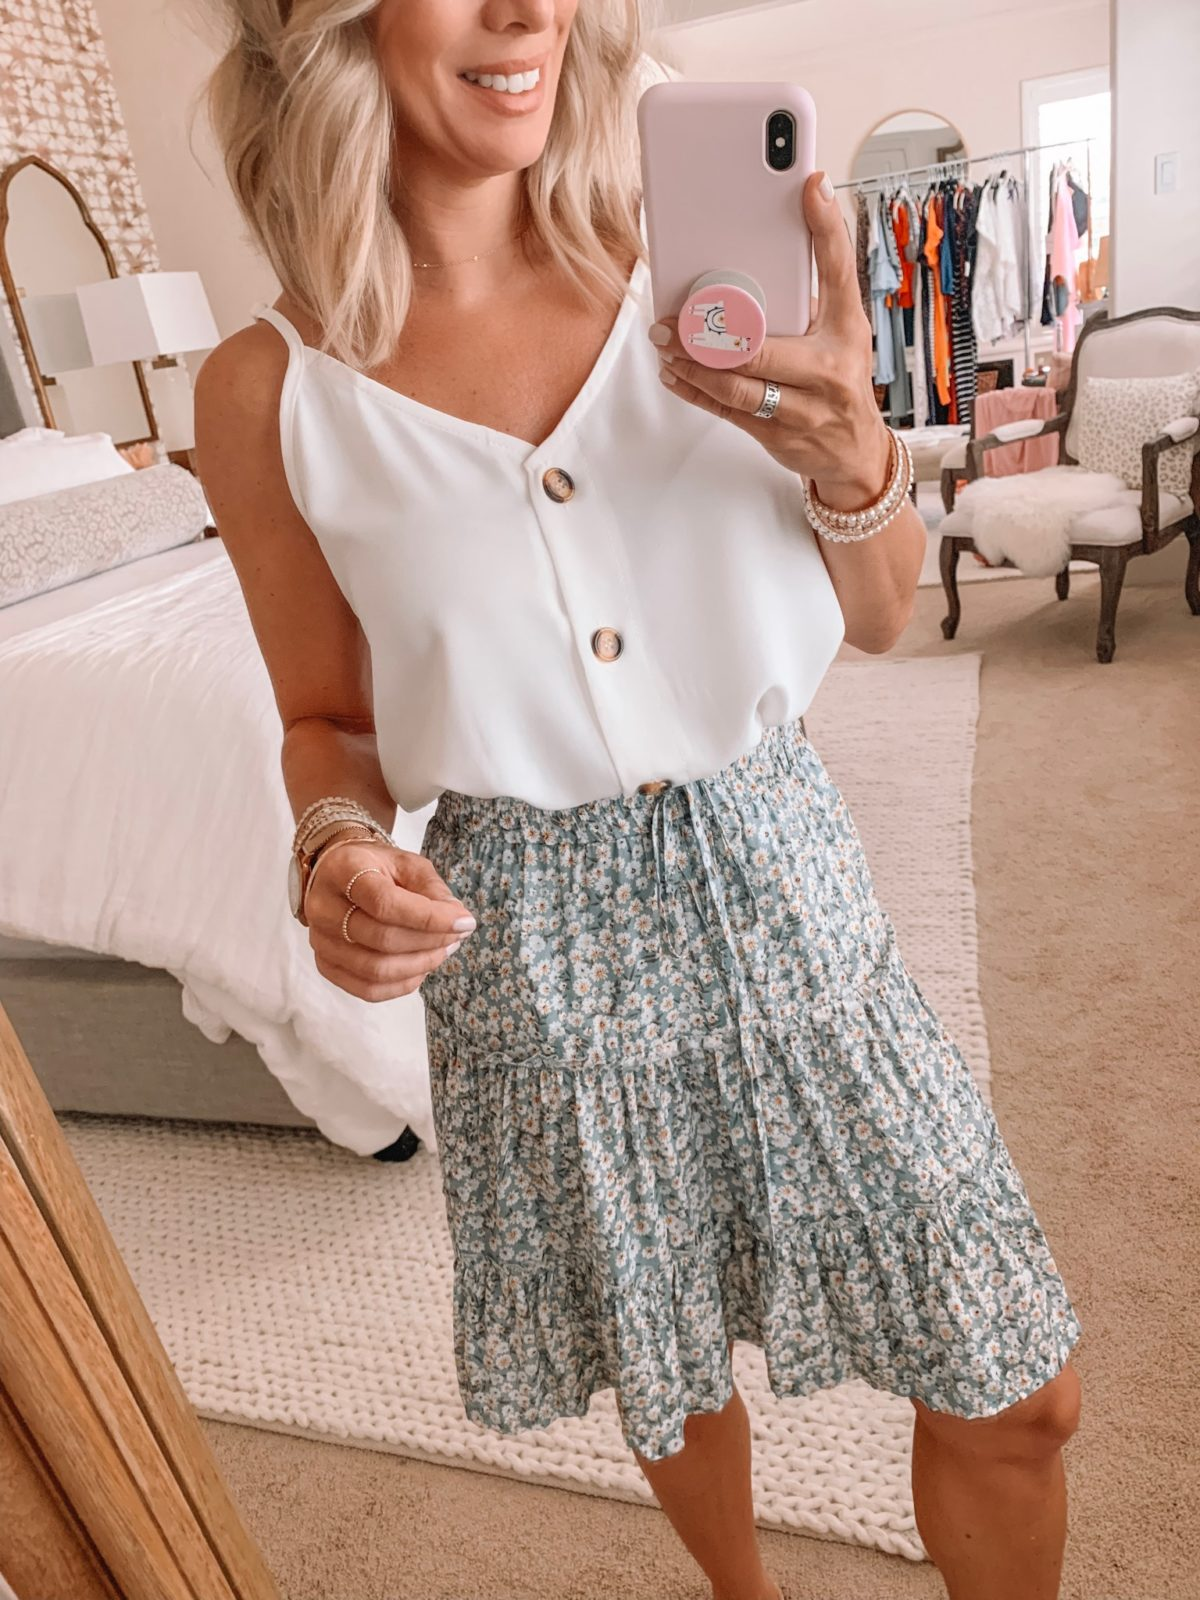 Amazon Fashion Haul - White button down tank with a green daisy skirt